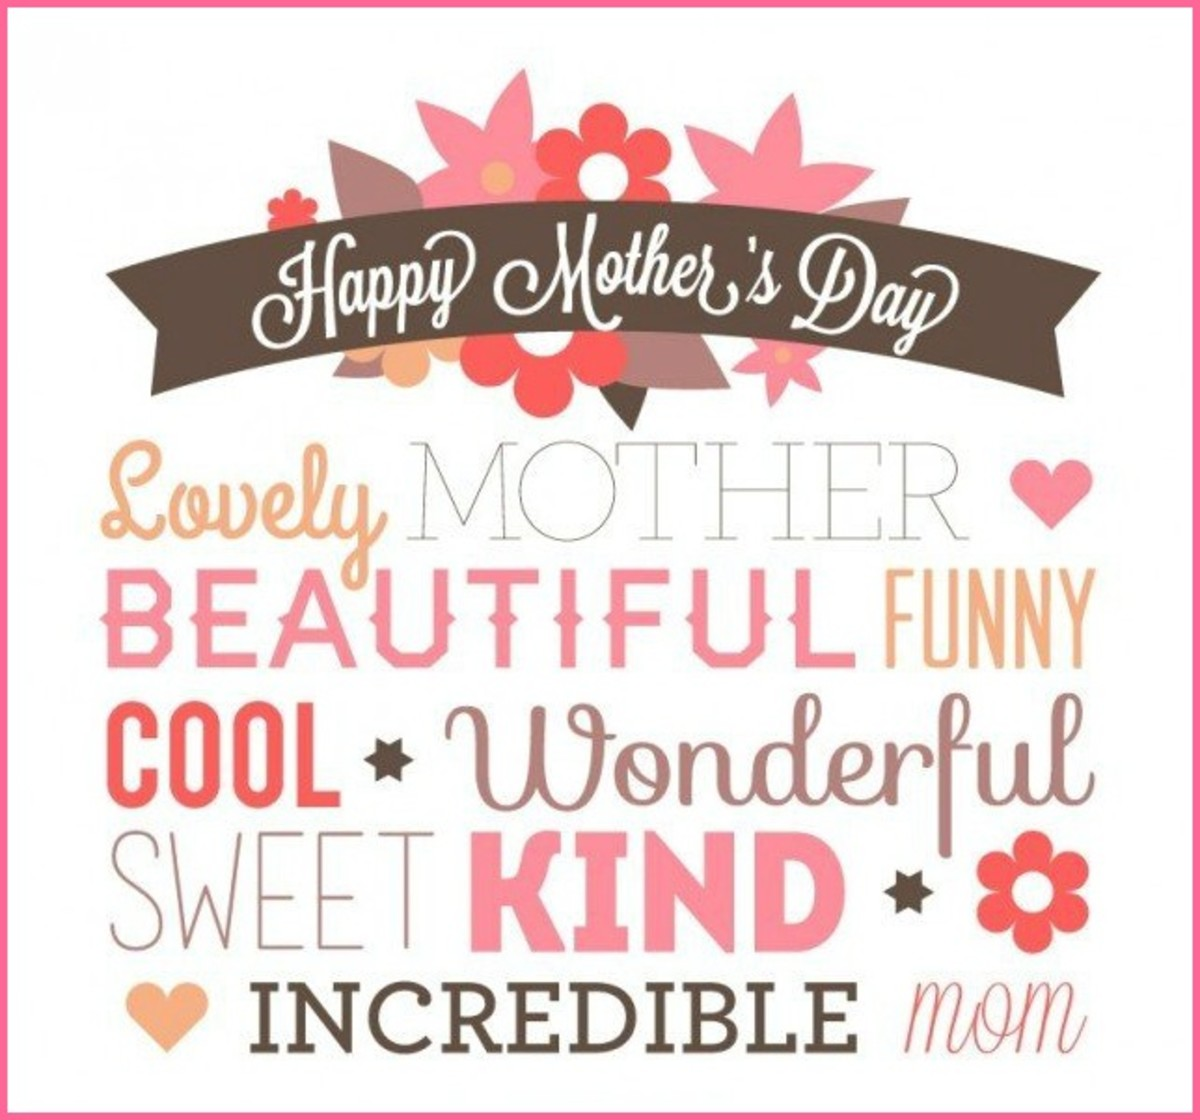 Mother's Day Picture with Adjectives for Mother